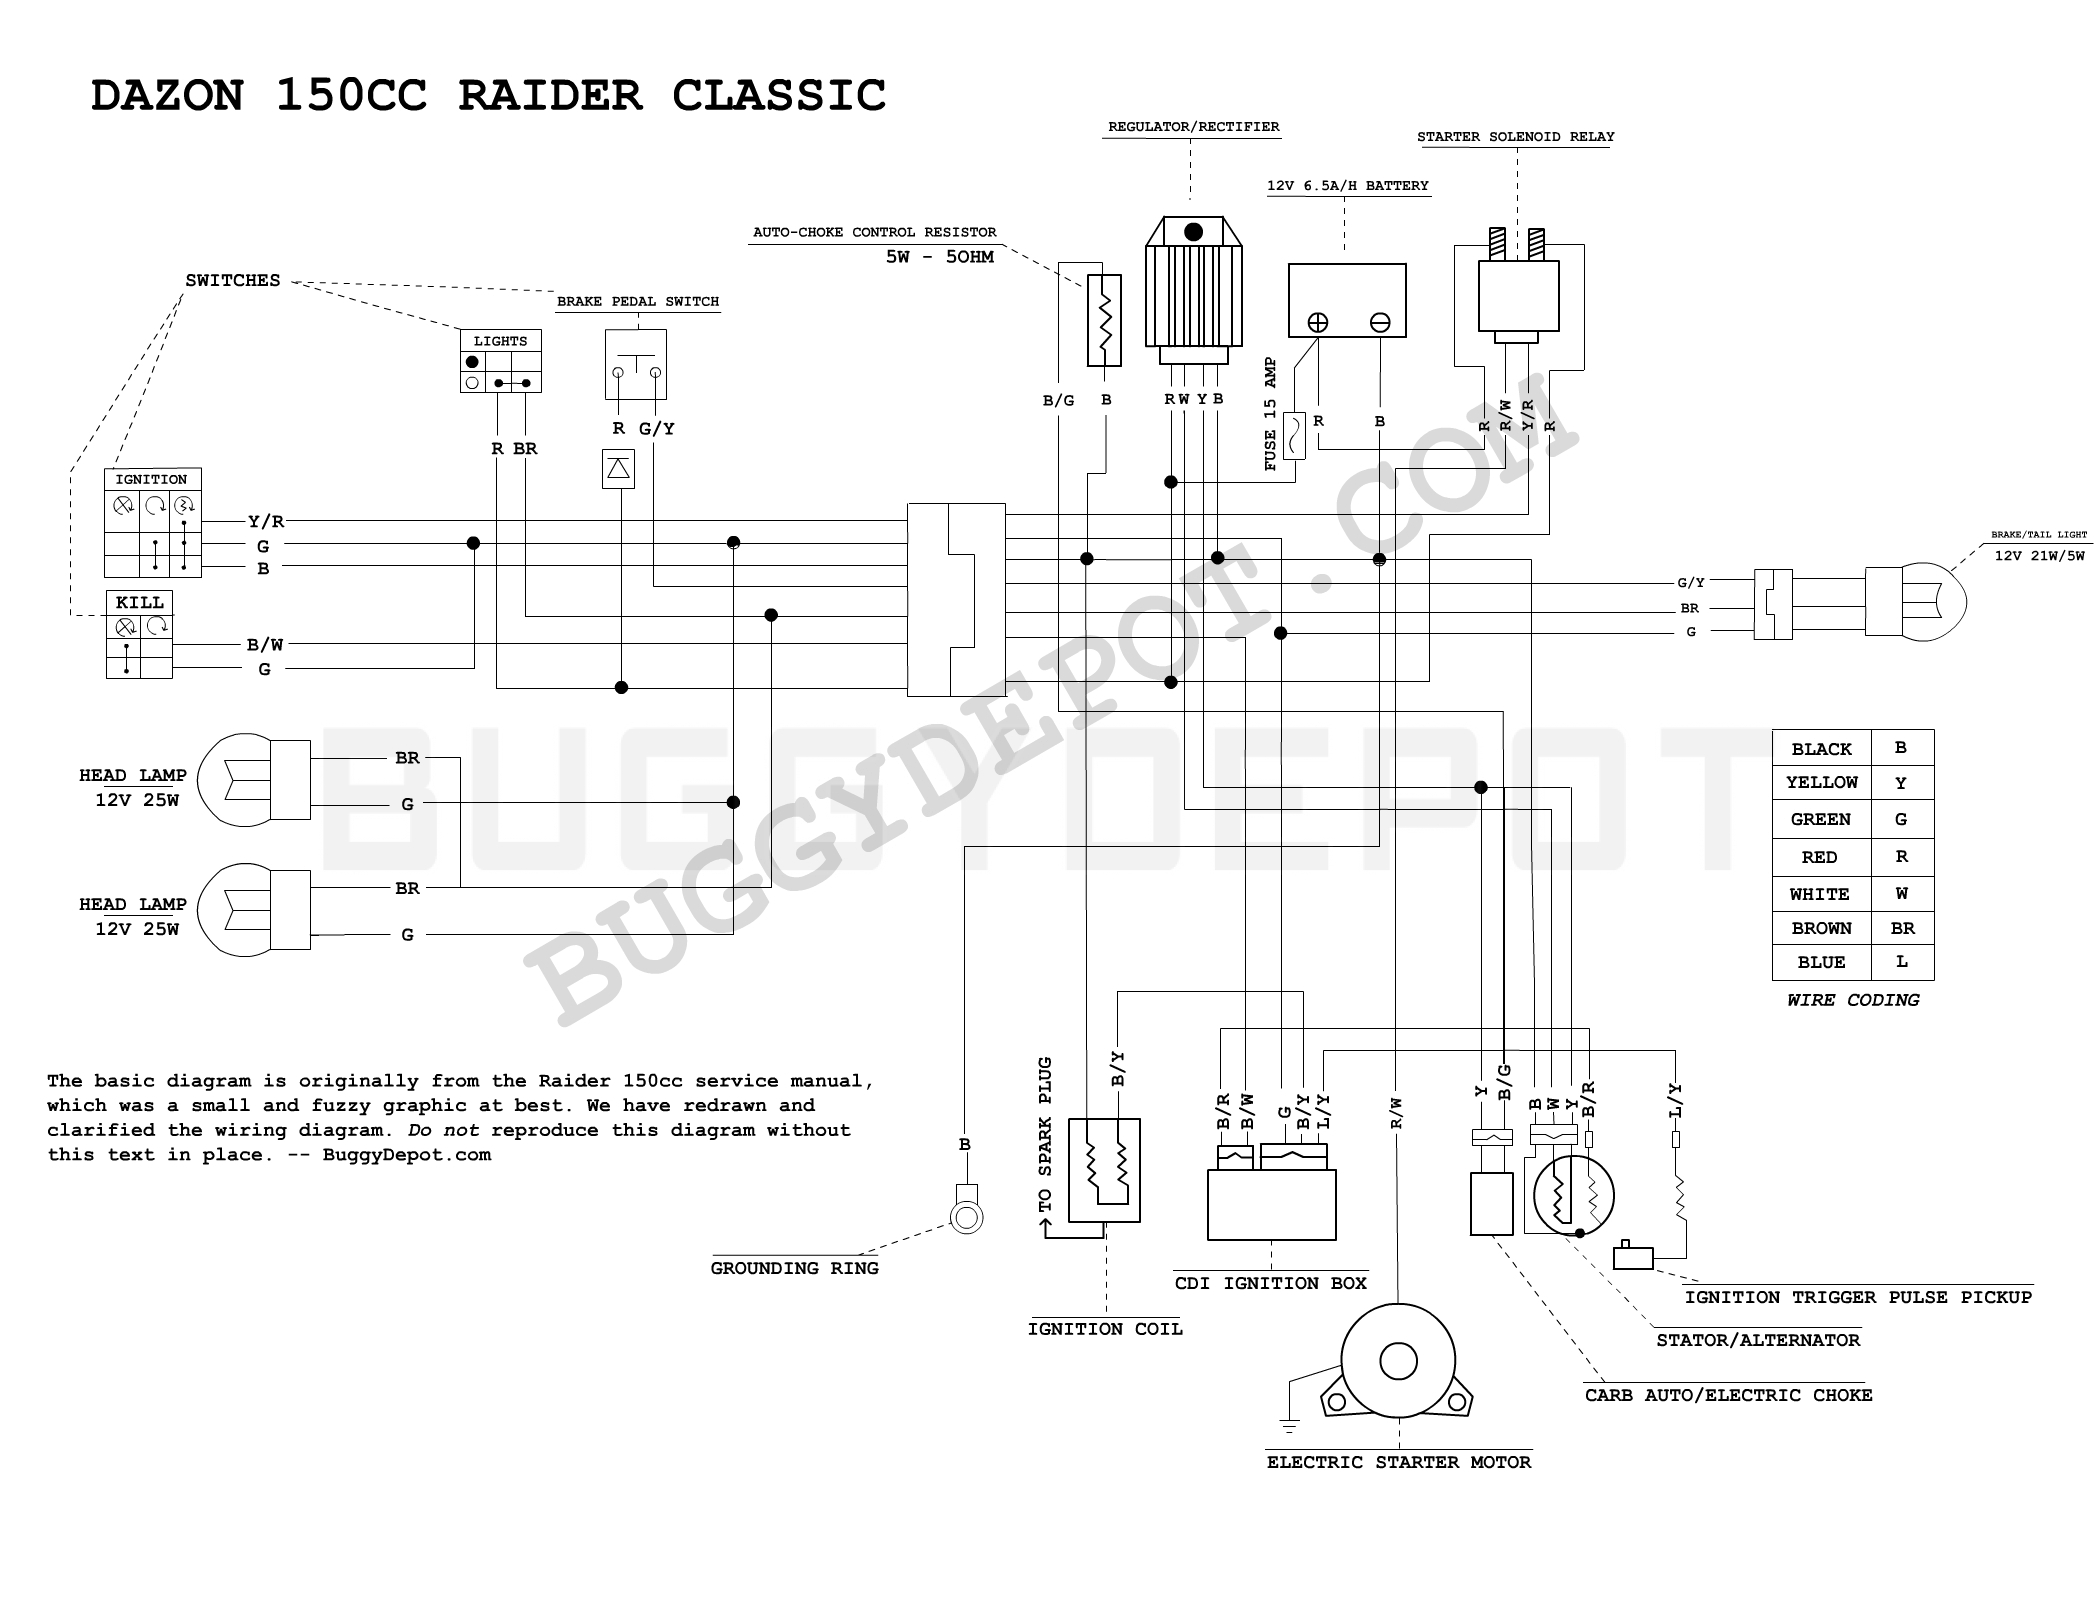 article_33_1278205207 dazon raider classic wiring diagram buggy depot technical center chinese 150cc wire diagram at honlapkeszites.co